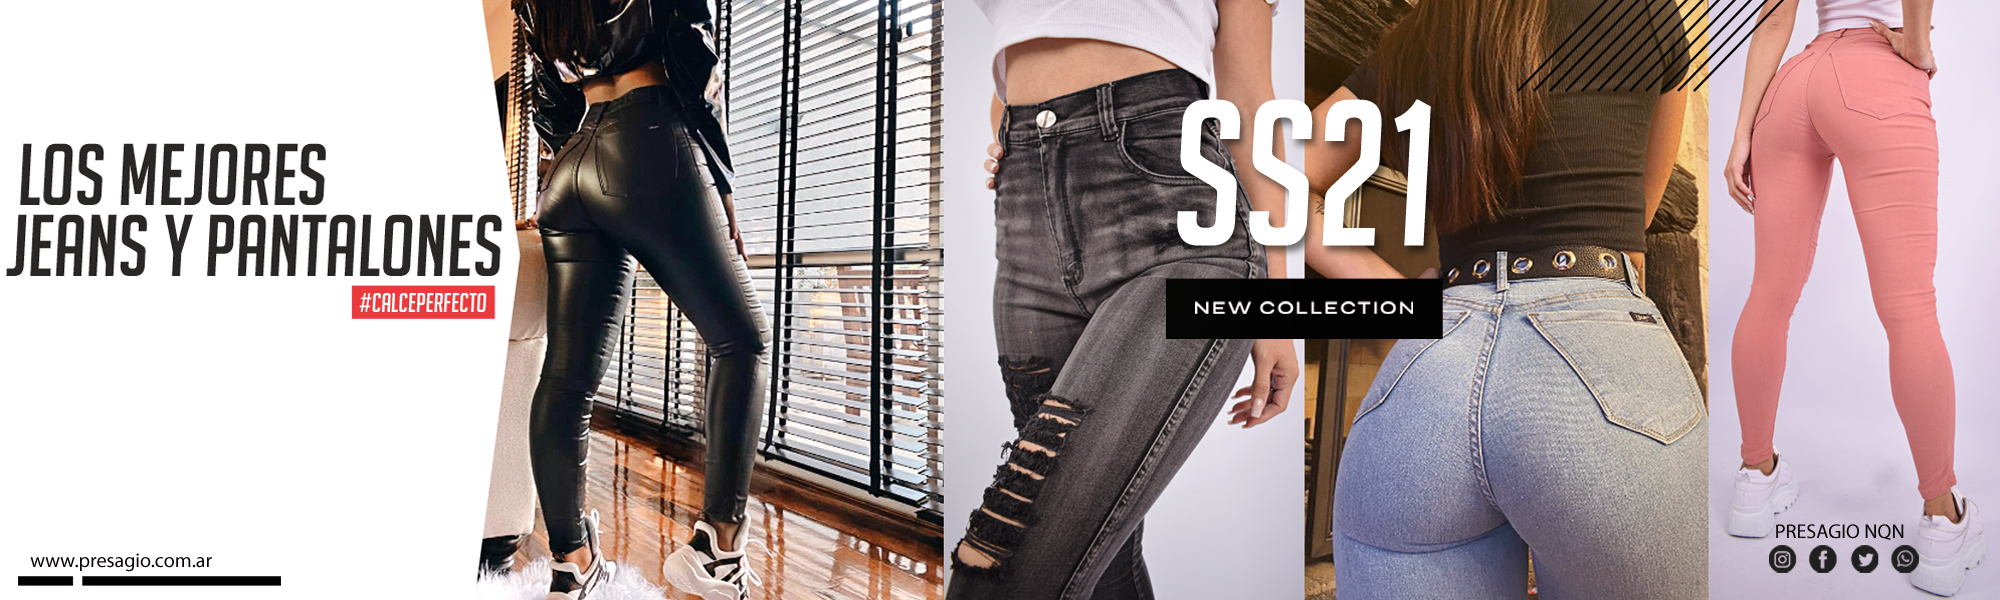 Banners presagio Jeans Mujer Octubre 2020.jpg